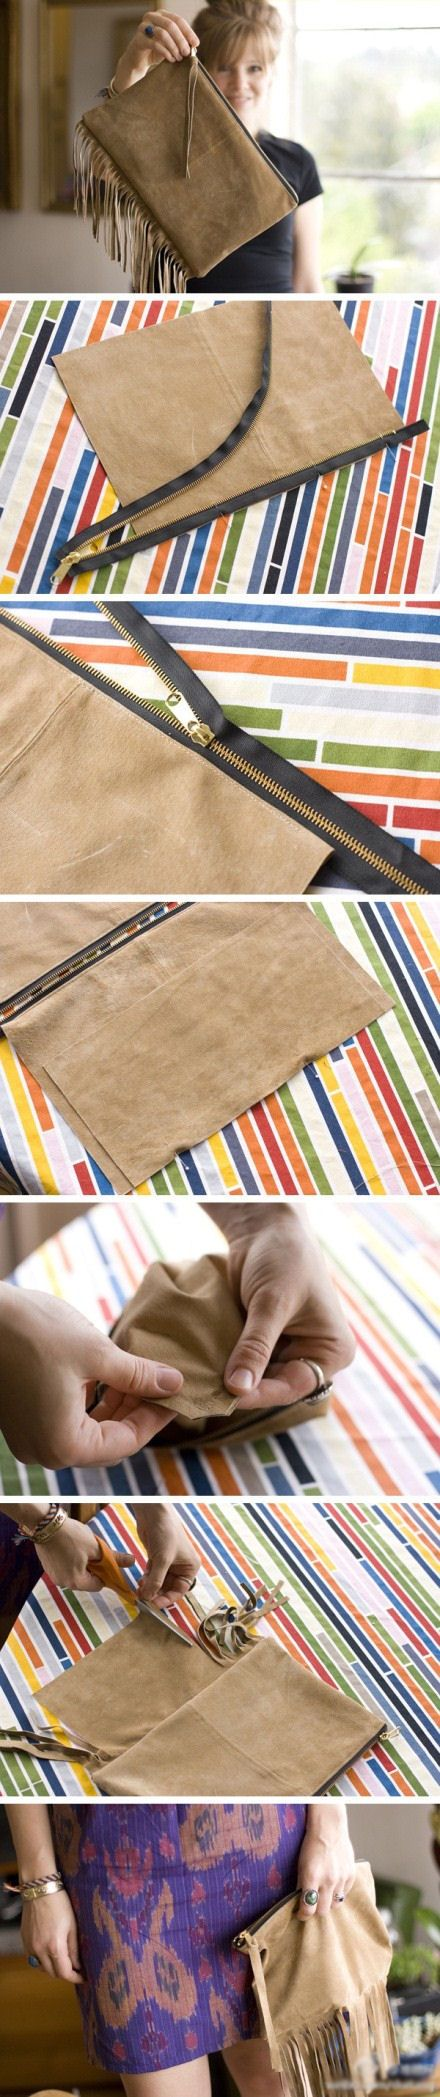 DIY Suede Purse. looks easy... we'll see if clumsy fingers can manage lol: